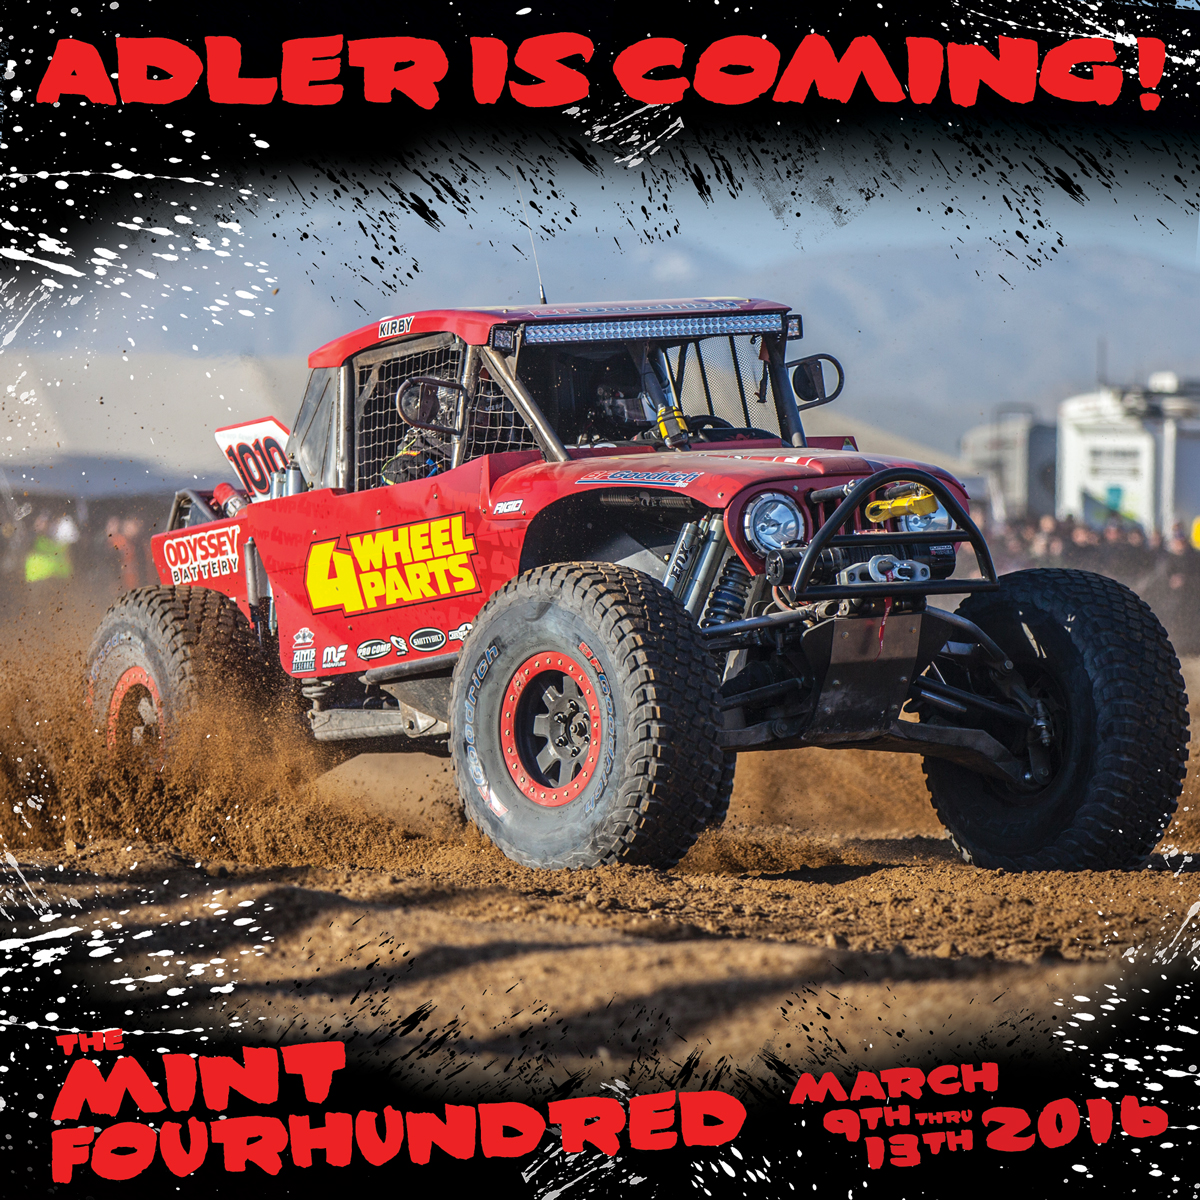 Adler-Is-Coming-to-the-mint400.jpg